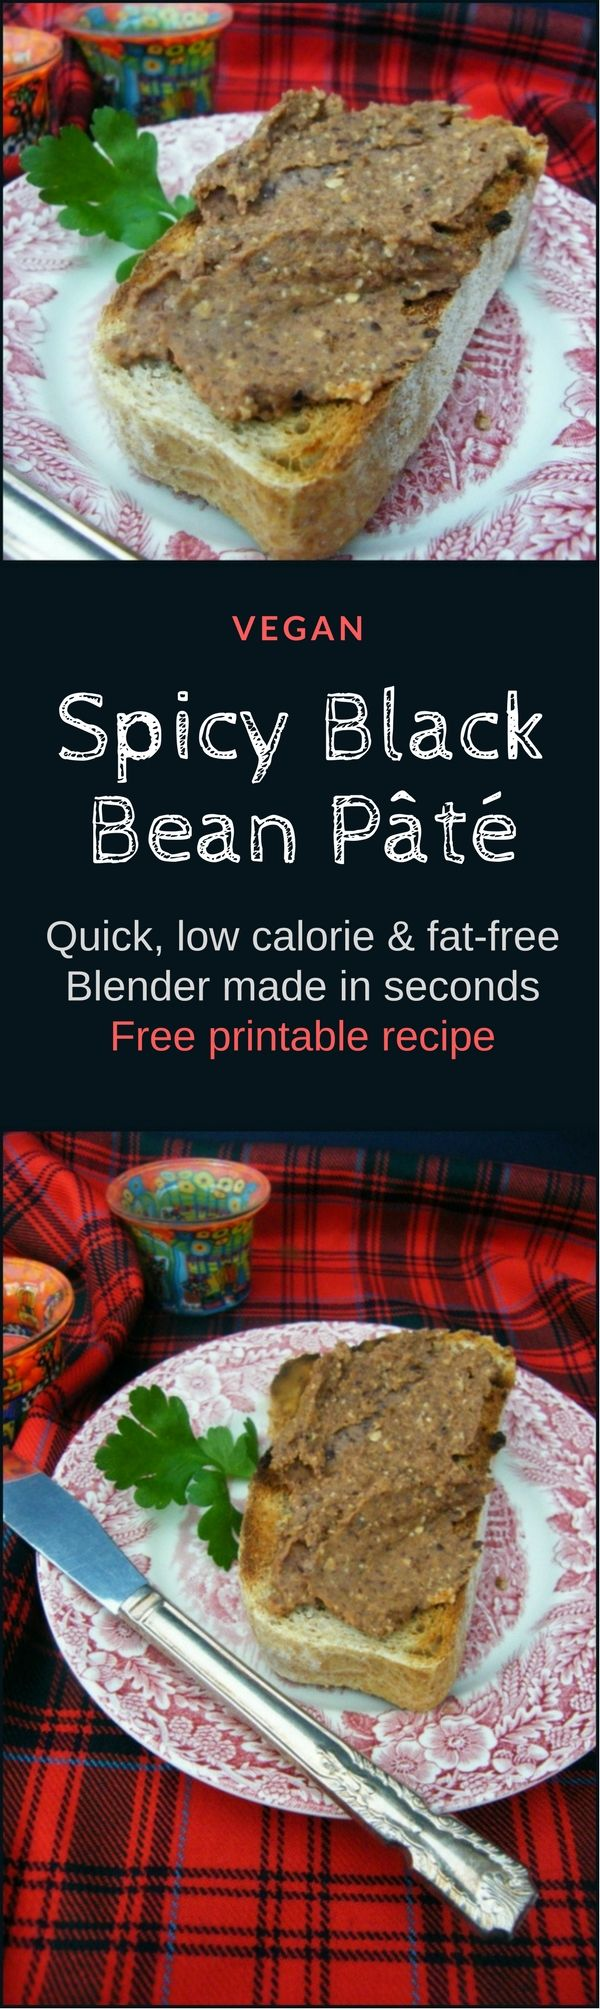 A rich velvety pâté made with black beans. Made in a blender in minutes and super tasty. It will sit happily in the fridge for a few days in an airtight container and the flavour gets better and better. This recipe is low calorie and fat free. Perfect for the 5:2 diet. Serve on toast and oatcakes or spread a generous amount on sandwiches or wraps and top with salad. Only 111 calories for a large serving.